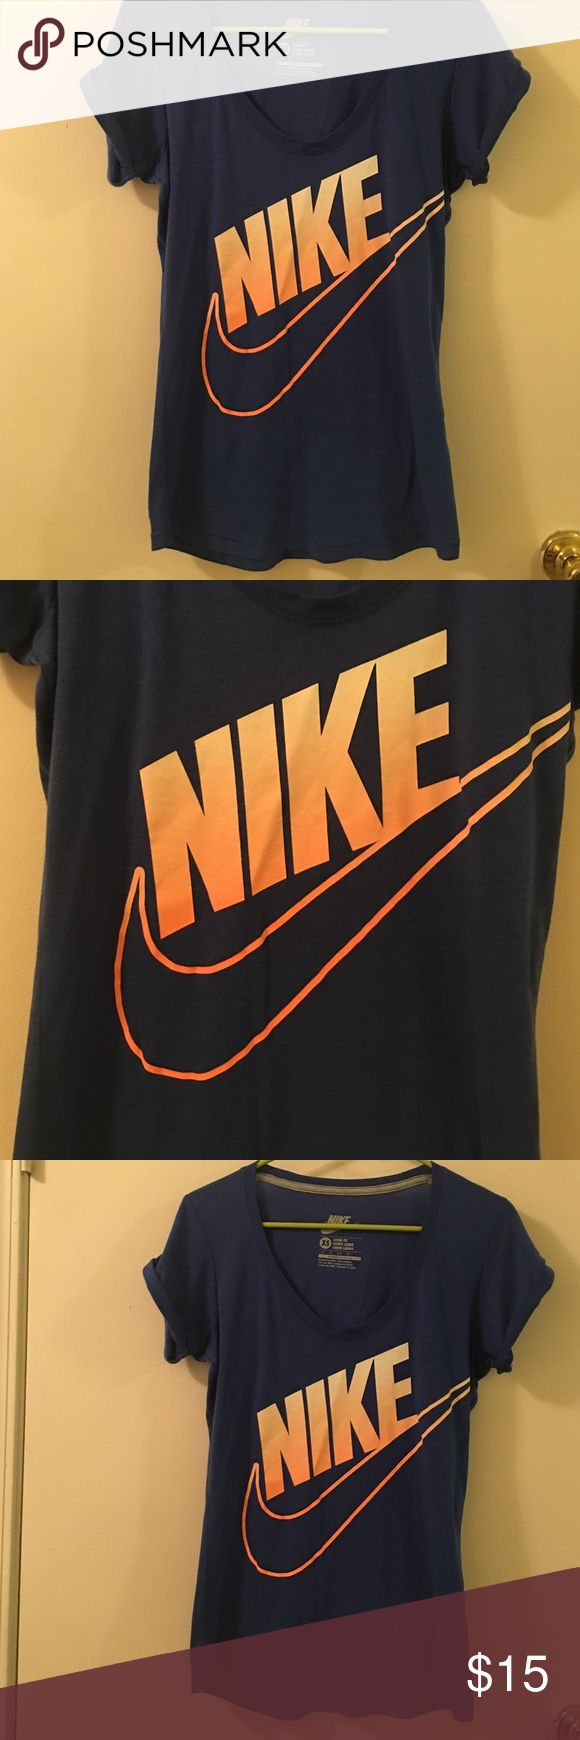 Nike top Like new very nice is xs but fits like smal Nike Tops Tees - Short Sleeve